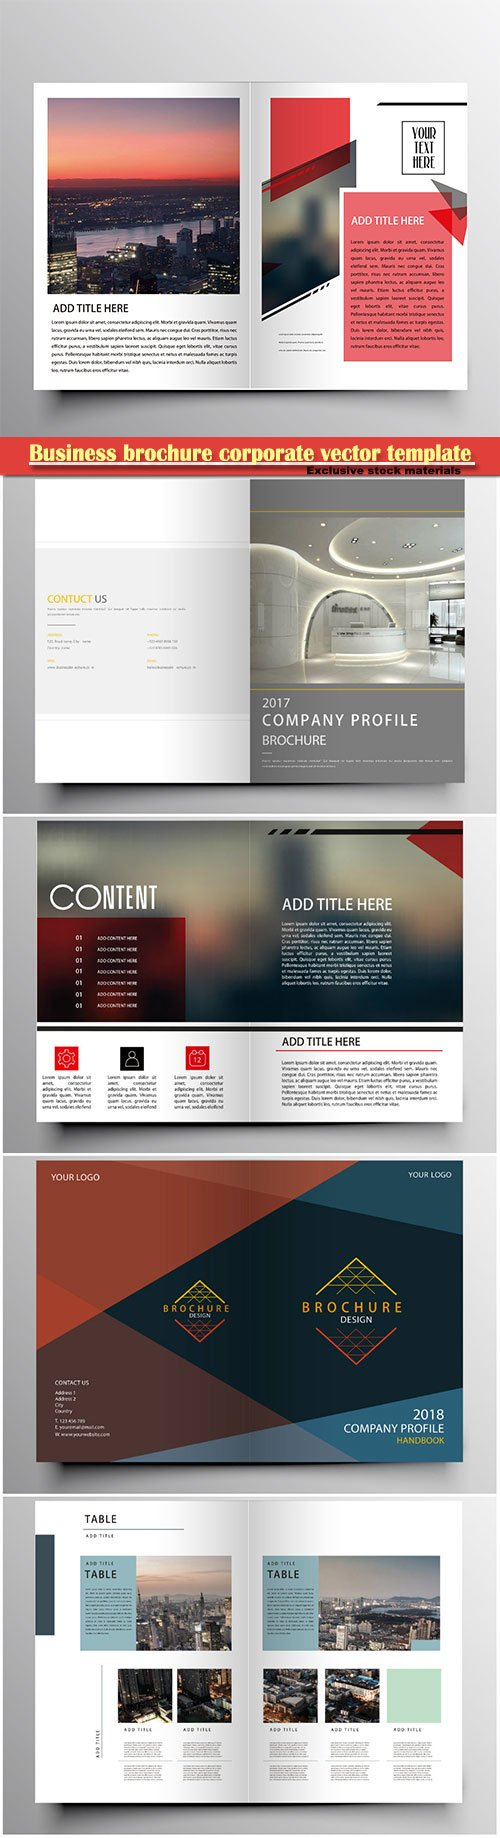 Business brochure corporate vector template, magazine flyer mockup # 52